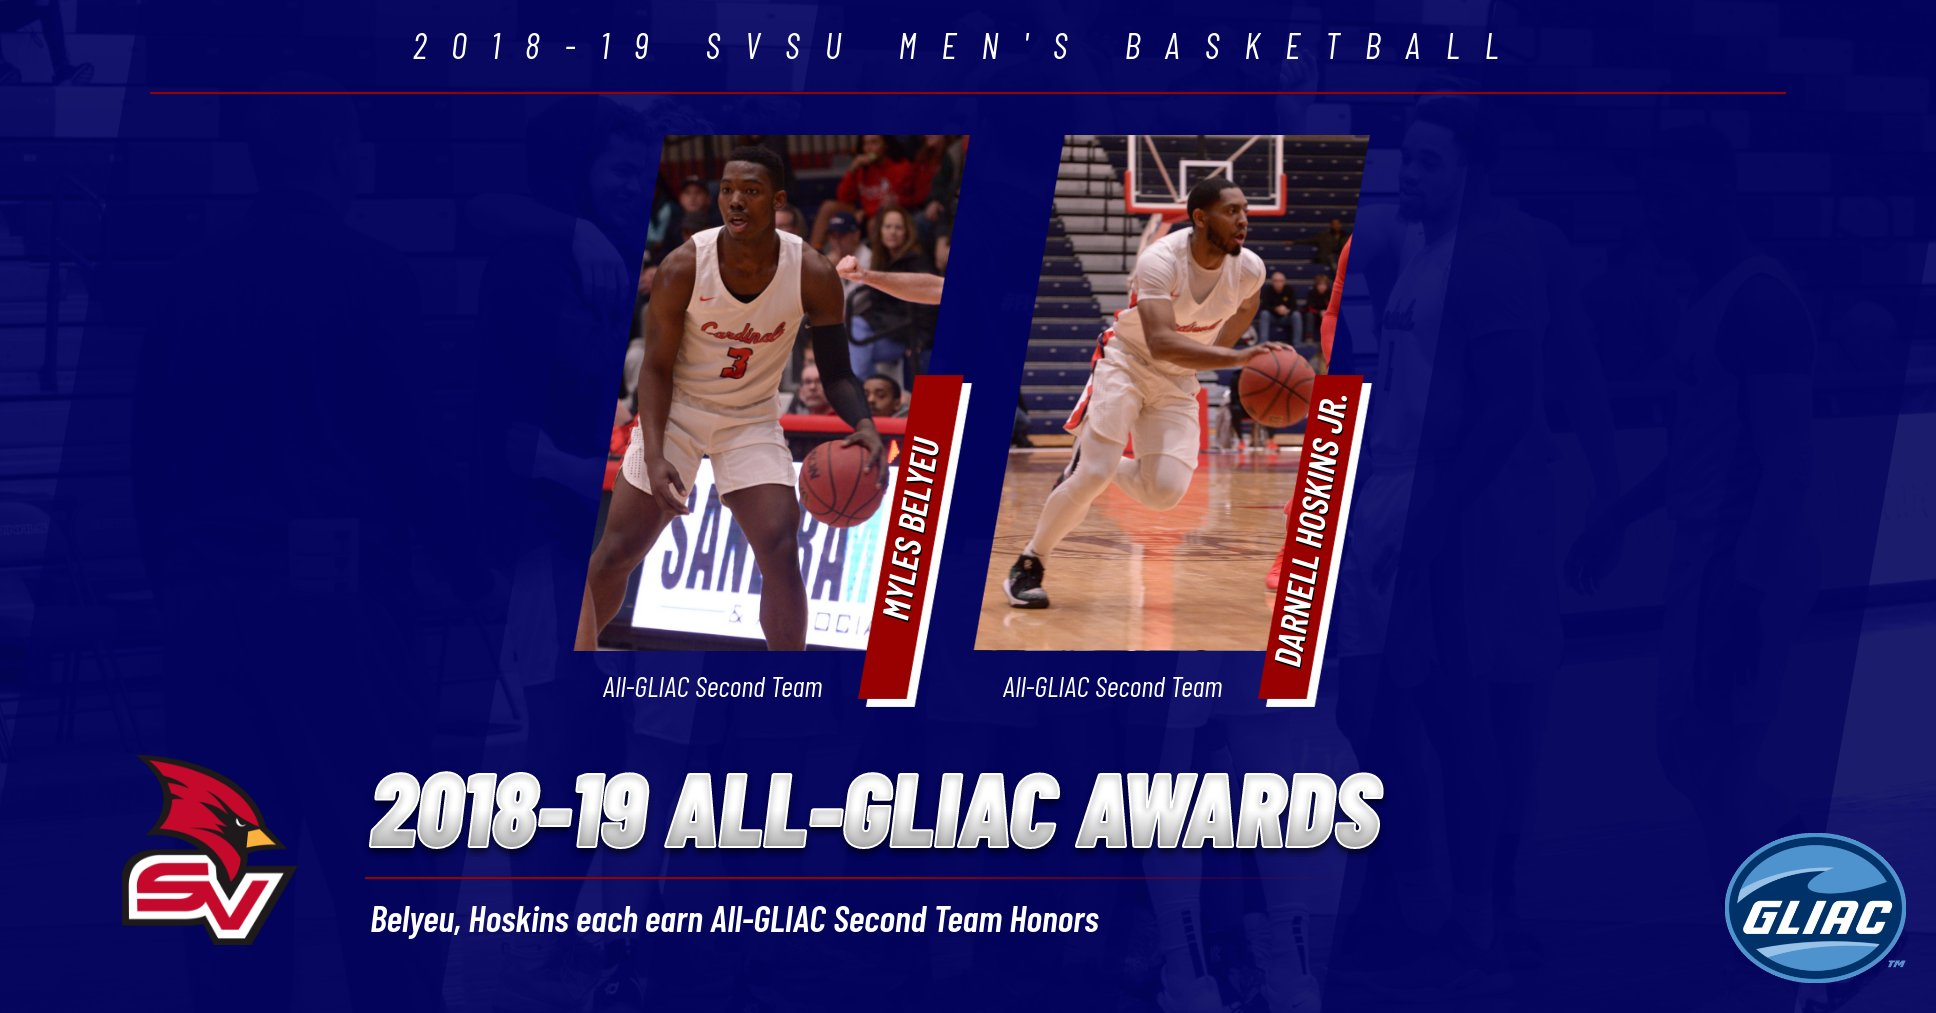 Belyeu, Hoskins earn 2018-19 All-GLIAC honors for SVSU